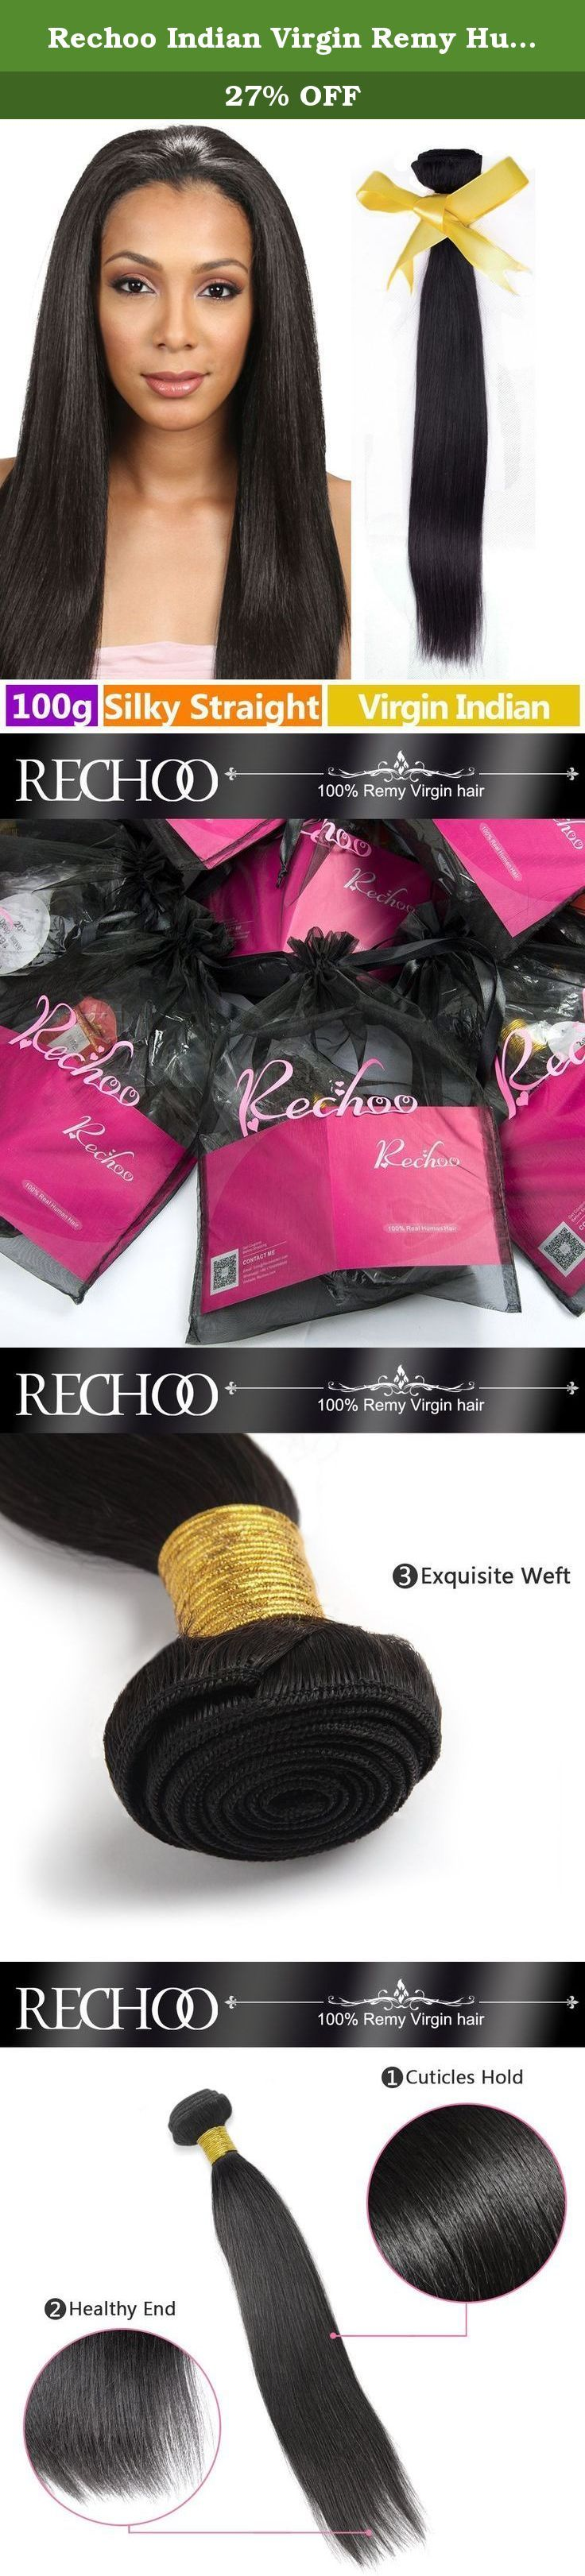 """Rechoo Indian Virgin Remy Human Hair Extension Weave 100g - Natural Black,22"""" Silky Straight. Rechoo Indian Virgin Remy Human Hair Extension Weaving 1 Bundle 100g - Silky Straight SPECIFICATION Hair Material: 100% Indian Virgin Remy Human Hair Hair Color: Natural Black Hair Texture: Silky Straight Hair Length: 10, 12, 14, 16, 18, 20, 22, 24, 26, 28 inches Hair Weight: 100g/bundle Hair Life: 6-12 months(Depending on use and care) ABOUT RECHOO HAIR Rechoo Hair is committed to offering the…"""